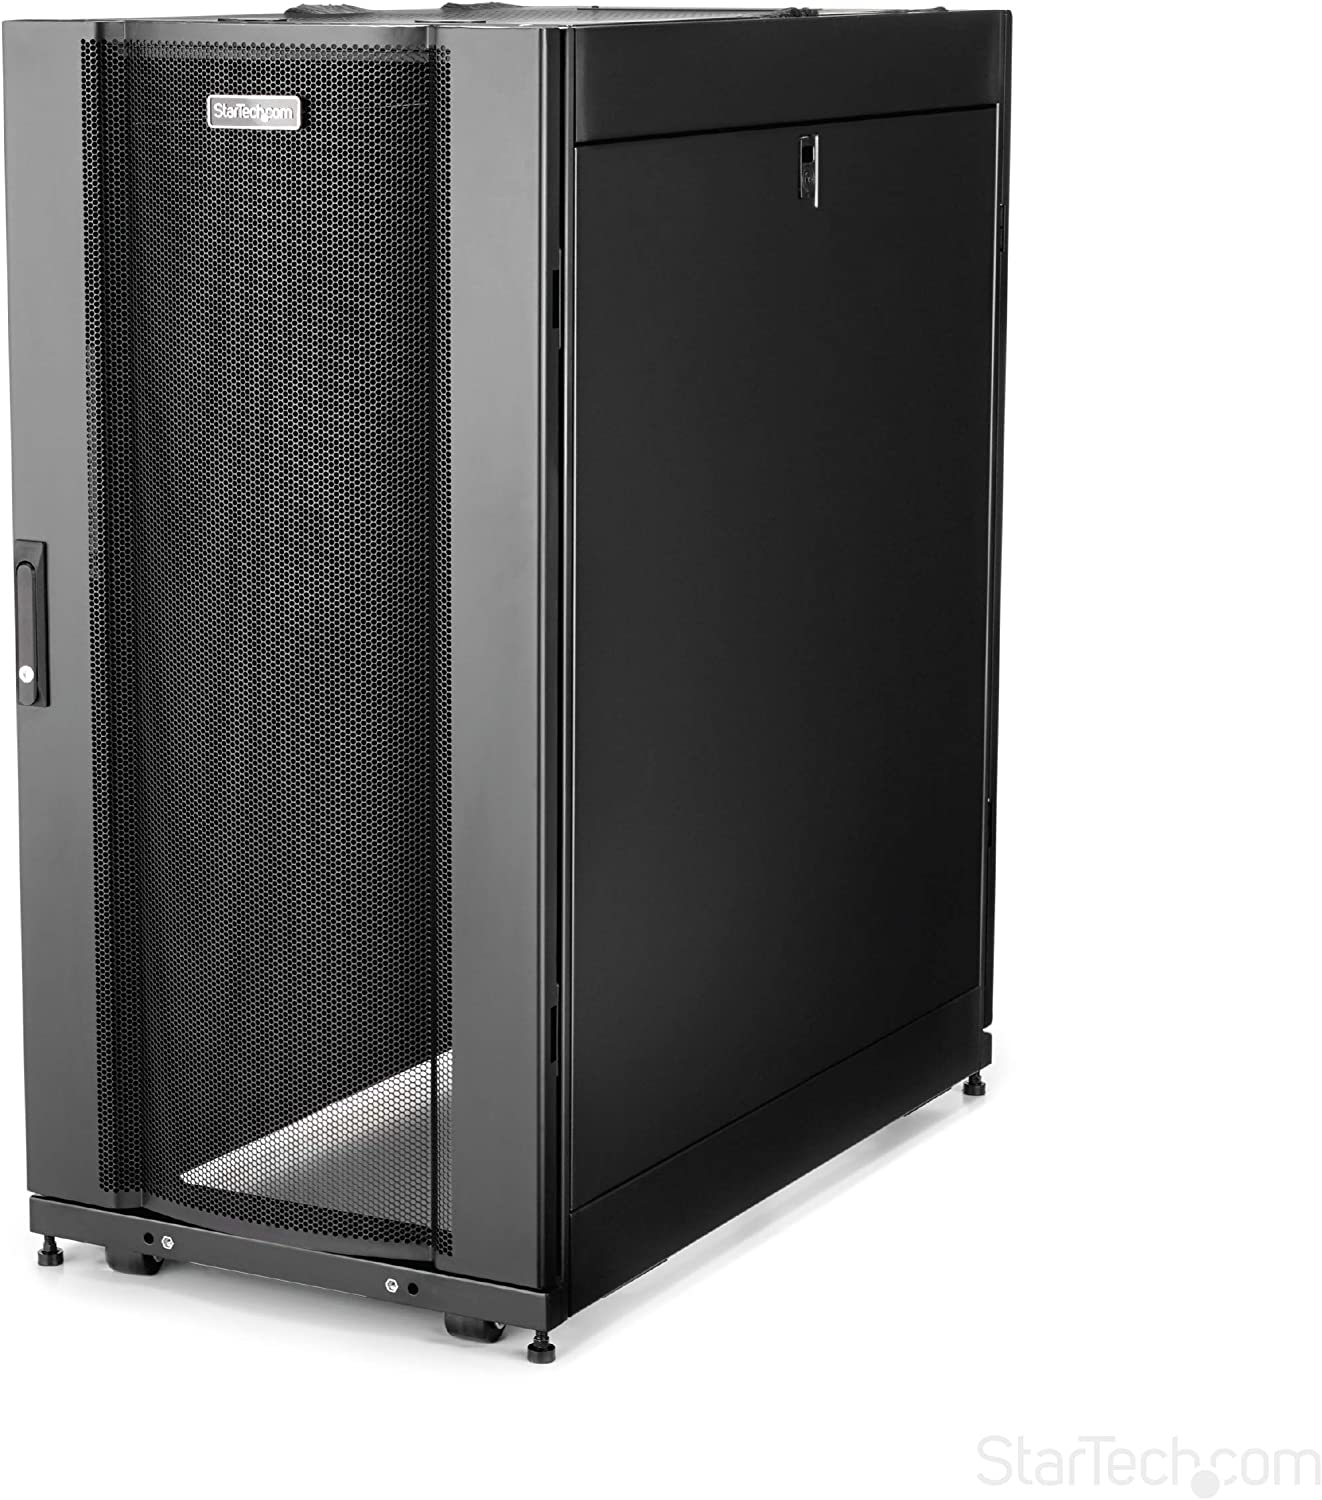 "StarTech.com 25U Server Rack Cabinet - 4-Post Adjustable Depth (7"" to 35"") Network Equipment Rack Enclosure w/Casters/Cable Management (RK2537BKM)"